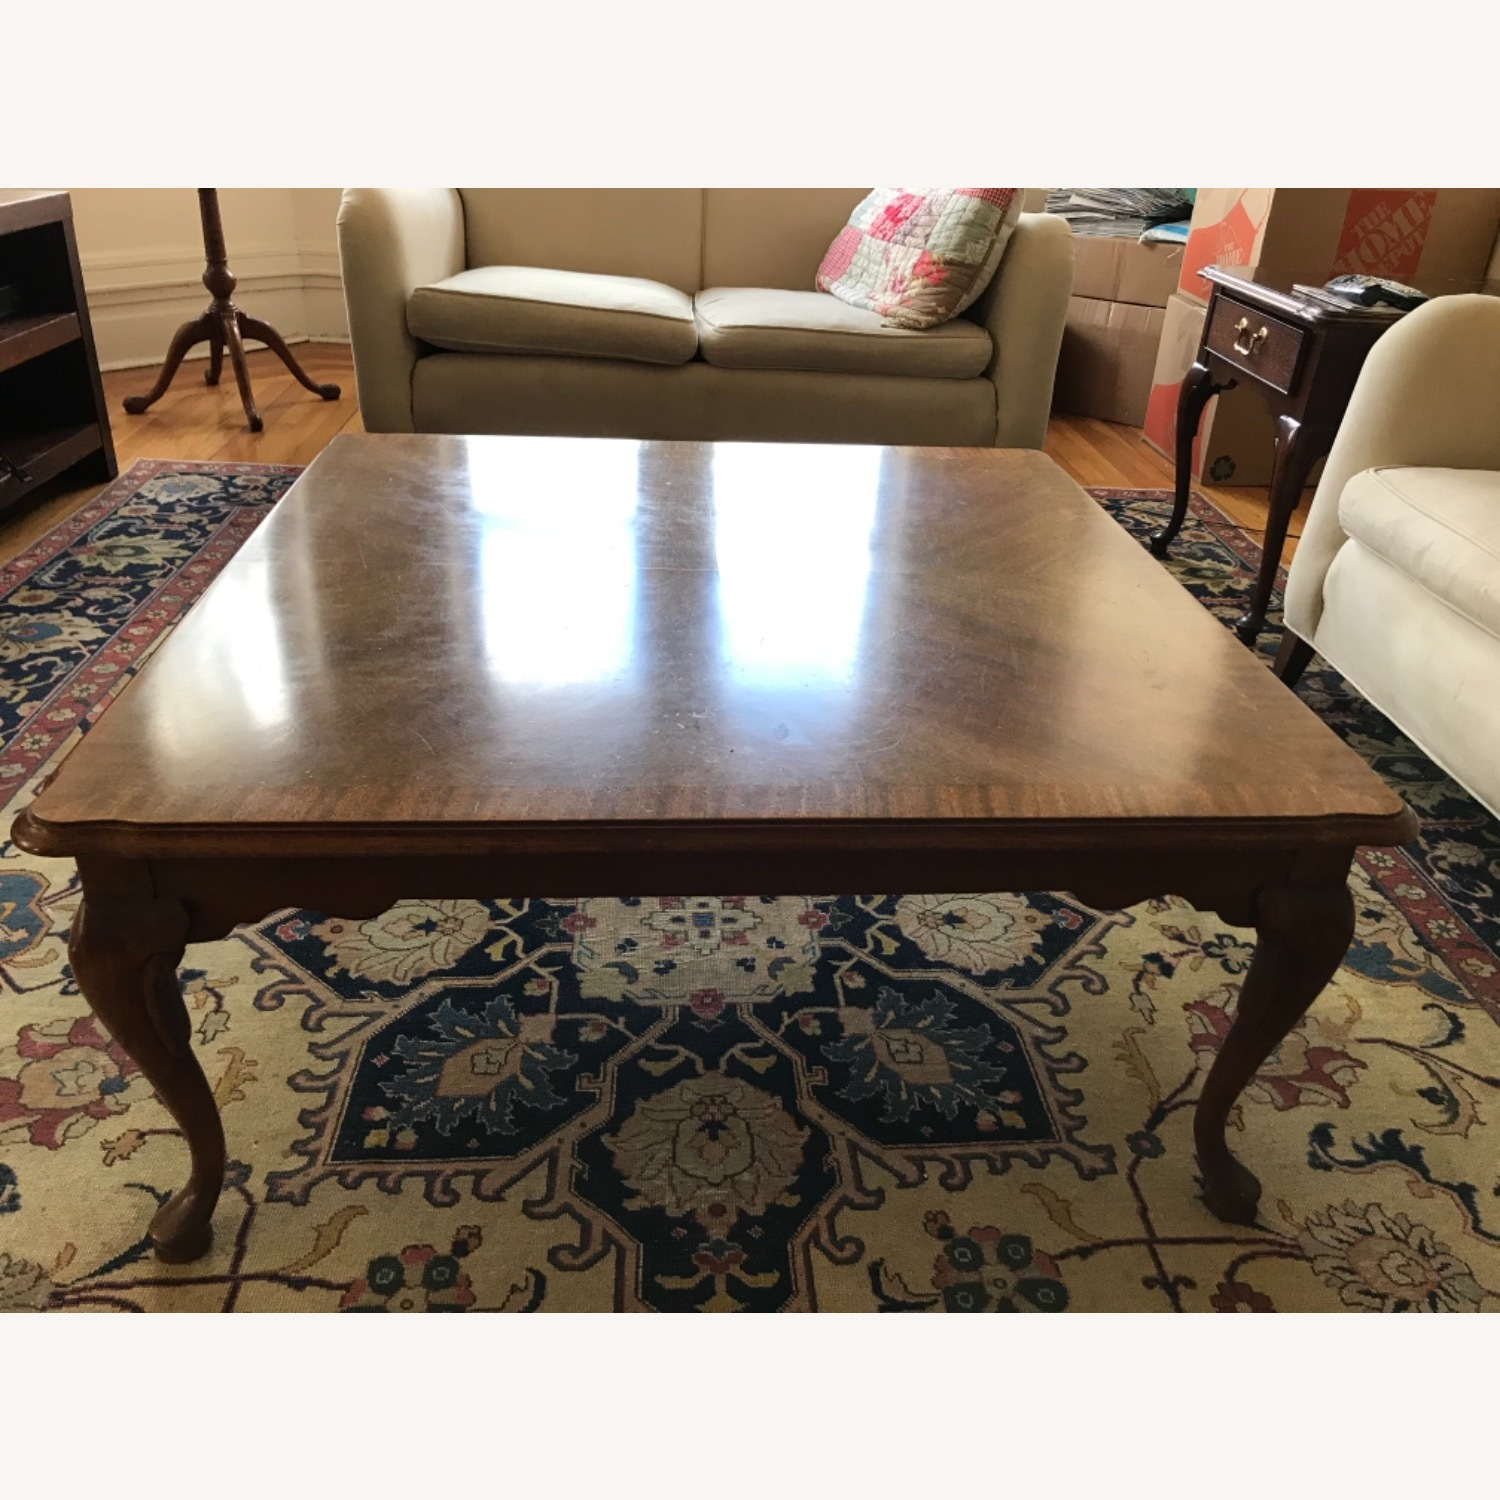 Ethan Allen Mahogany Coffee Table - image-1